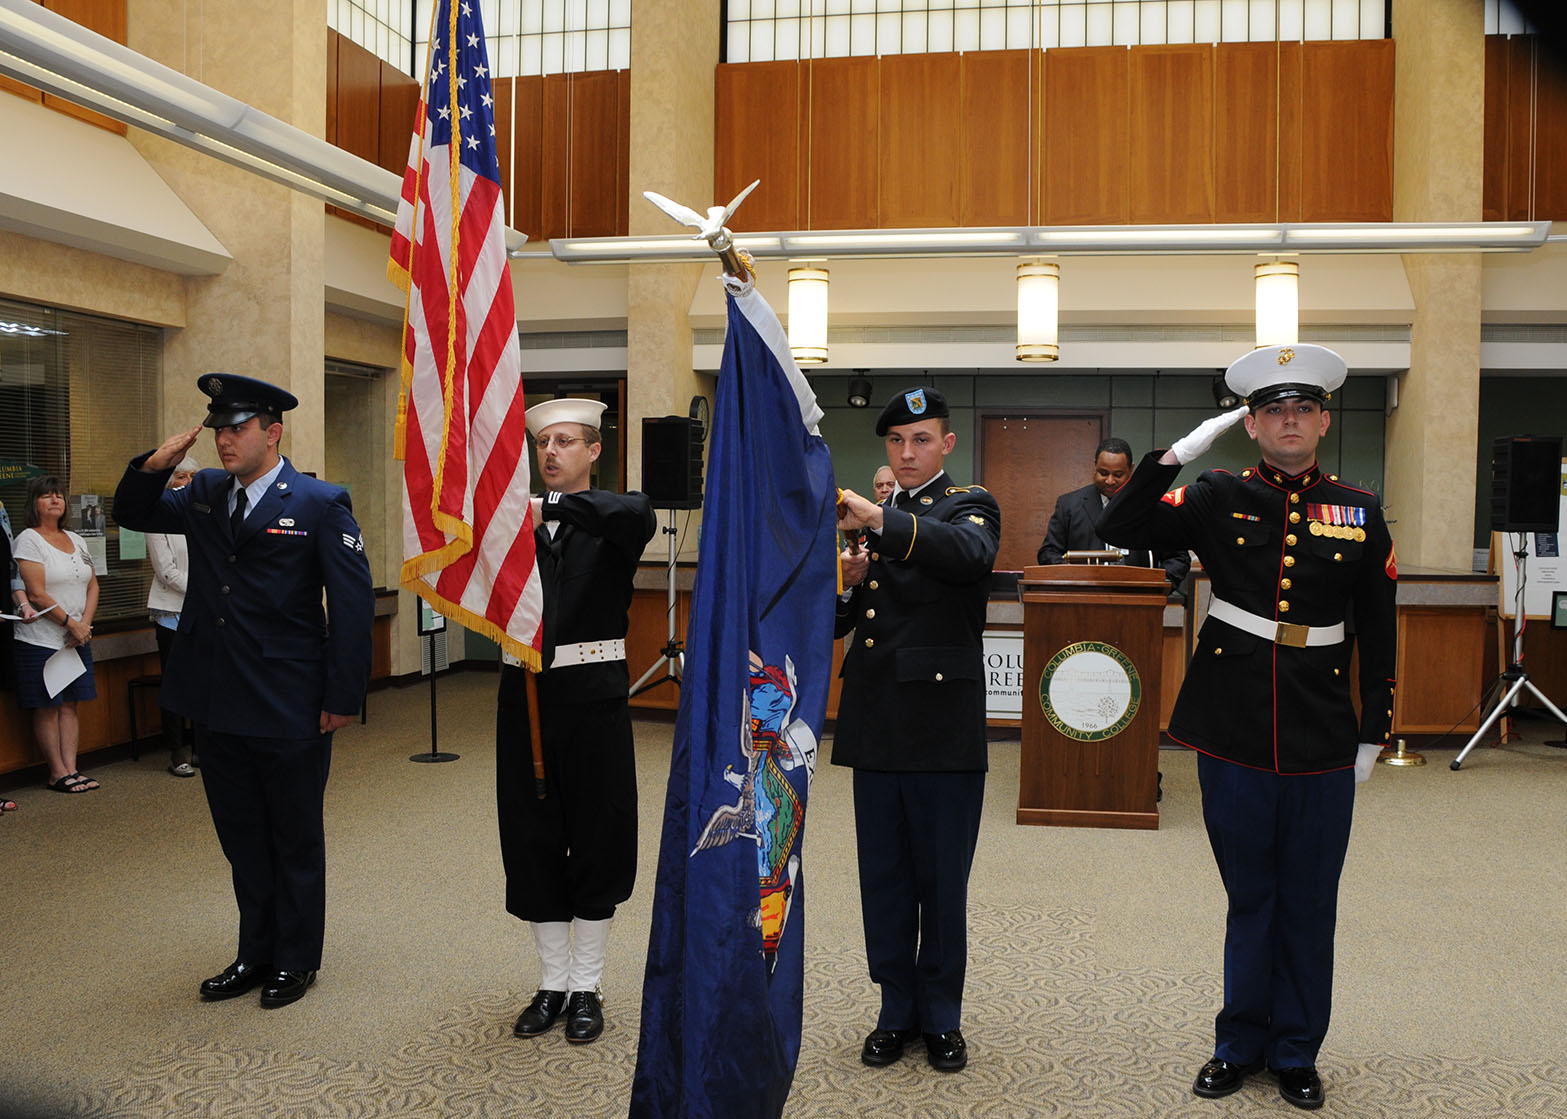 Military color guard on campus